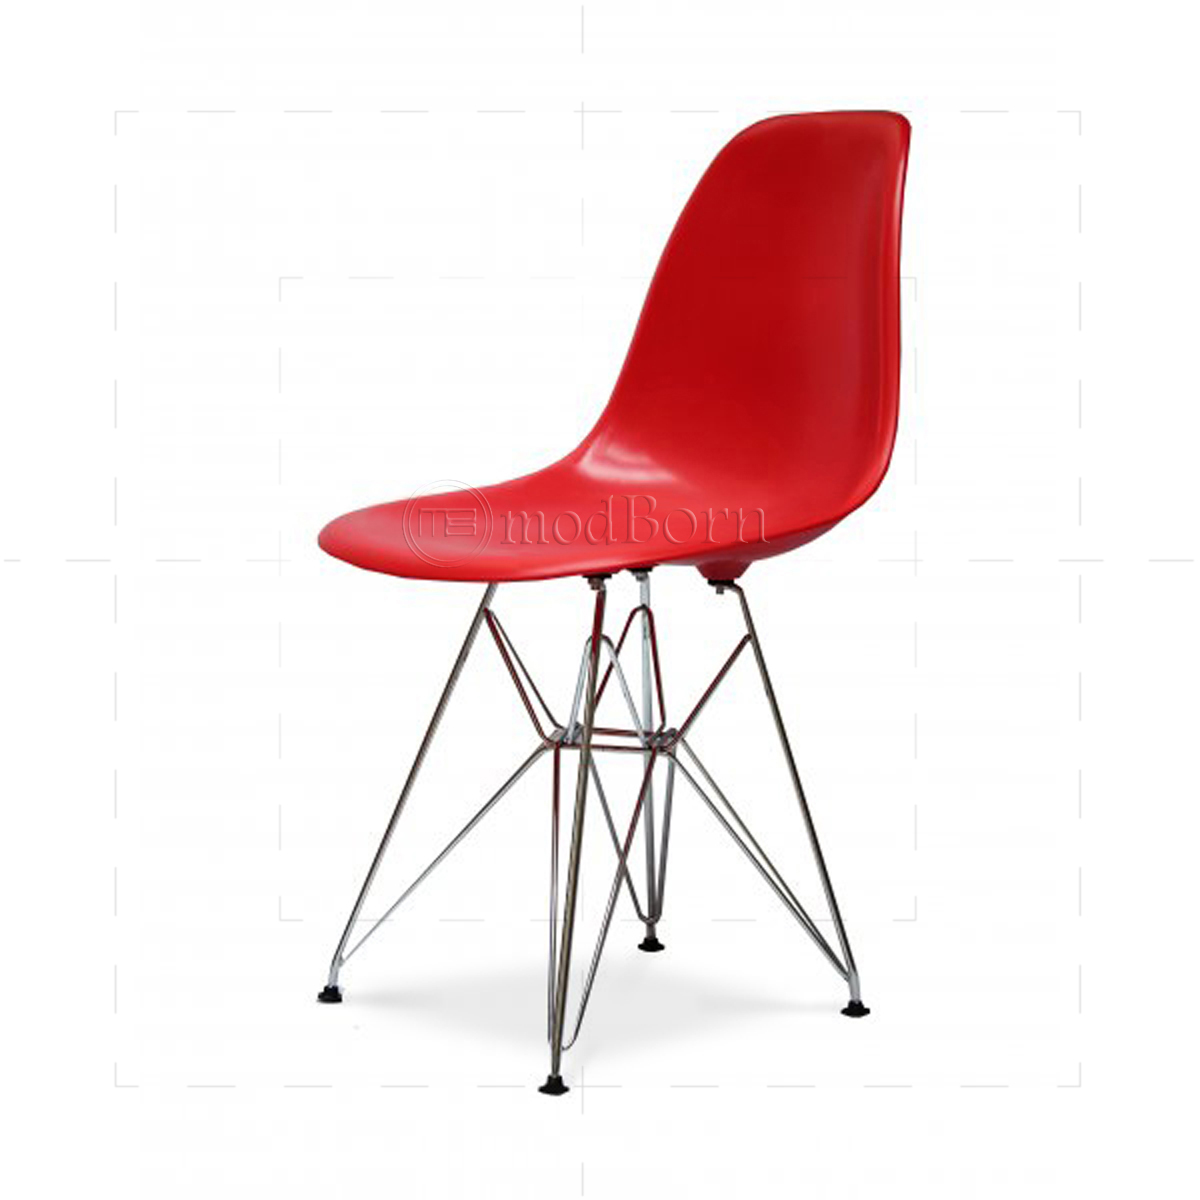 Eames style dining dsr eiffel chair red replica for Eames replica deutschland